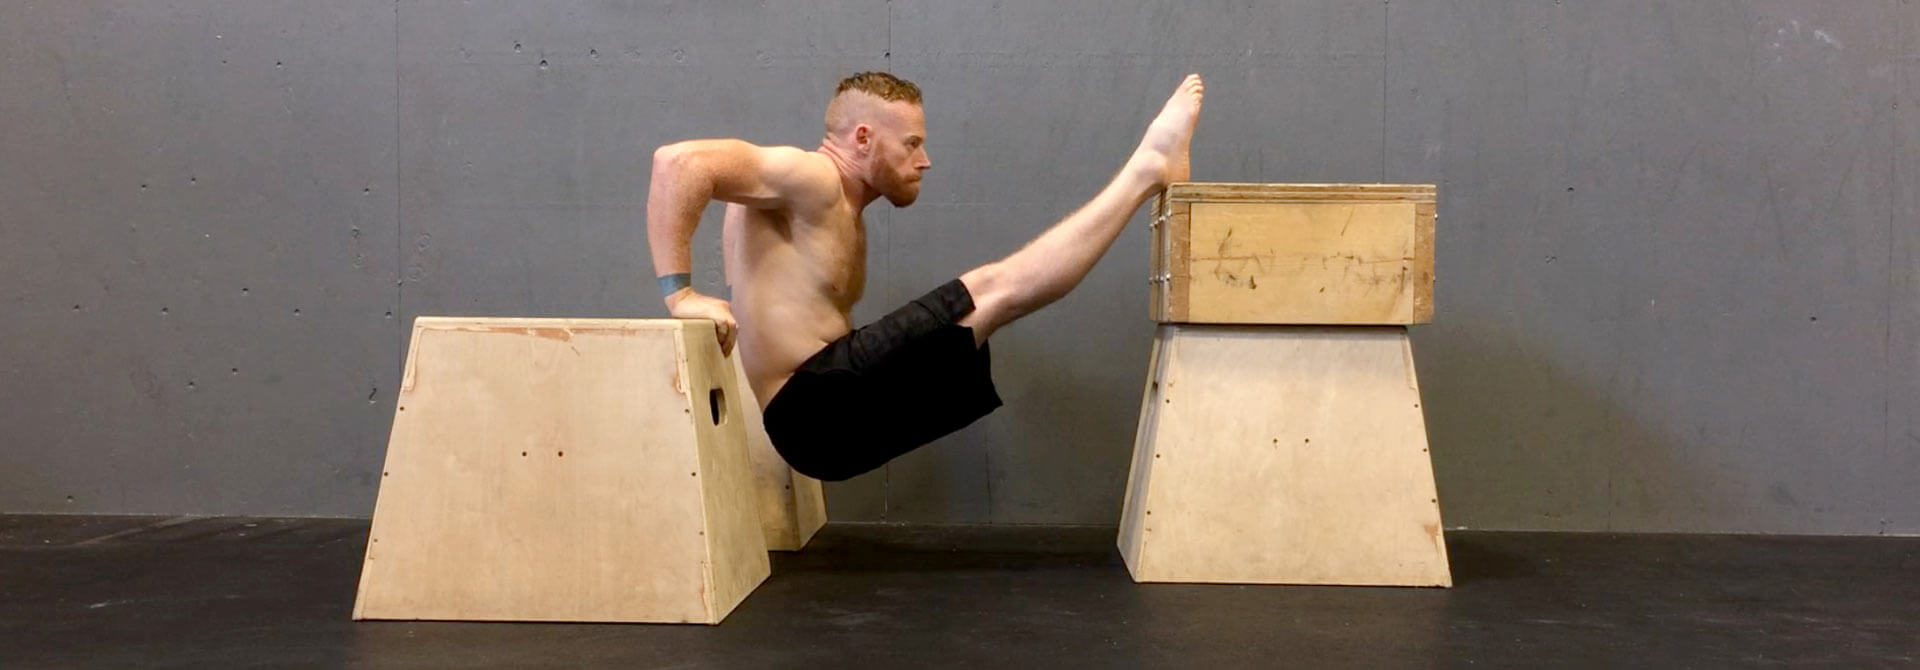 GymnasticBodies athlete demonstrates a muscle-up progression, box dips.